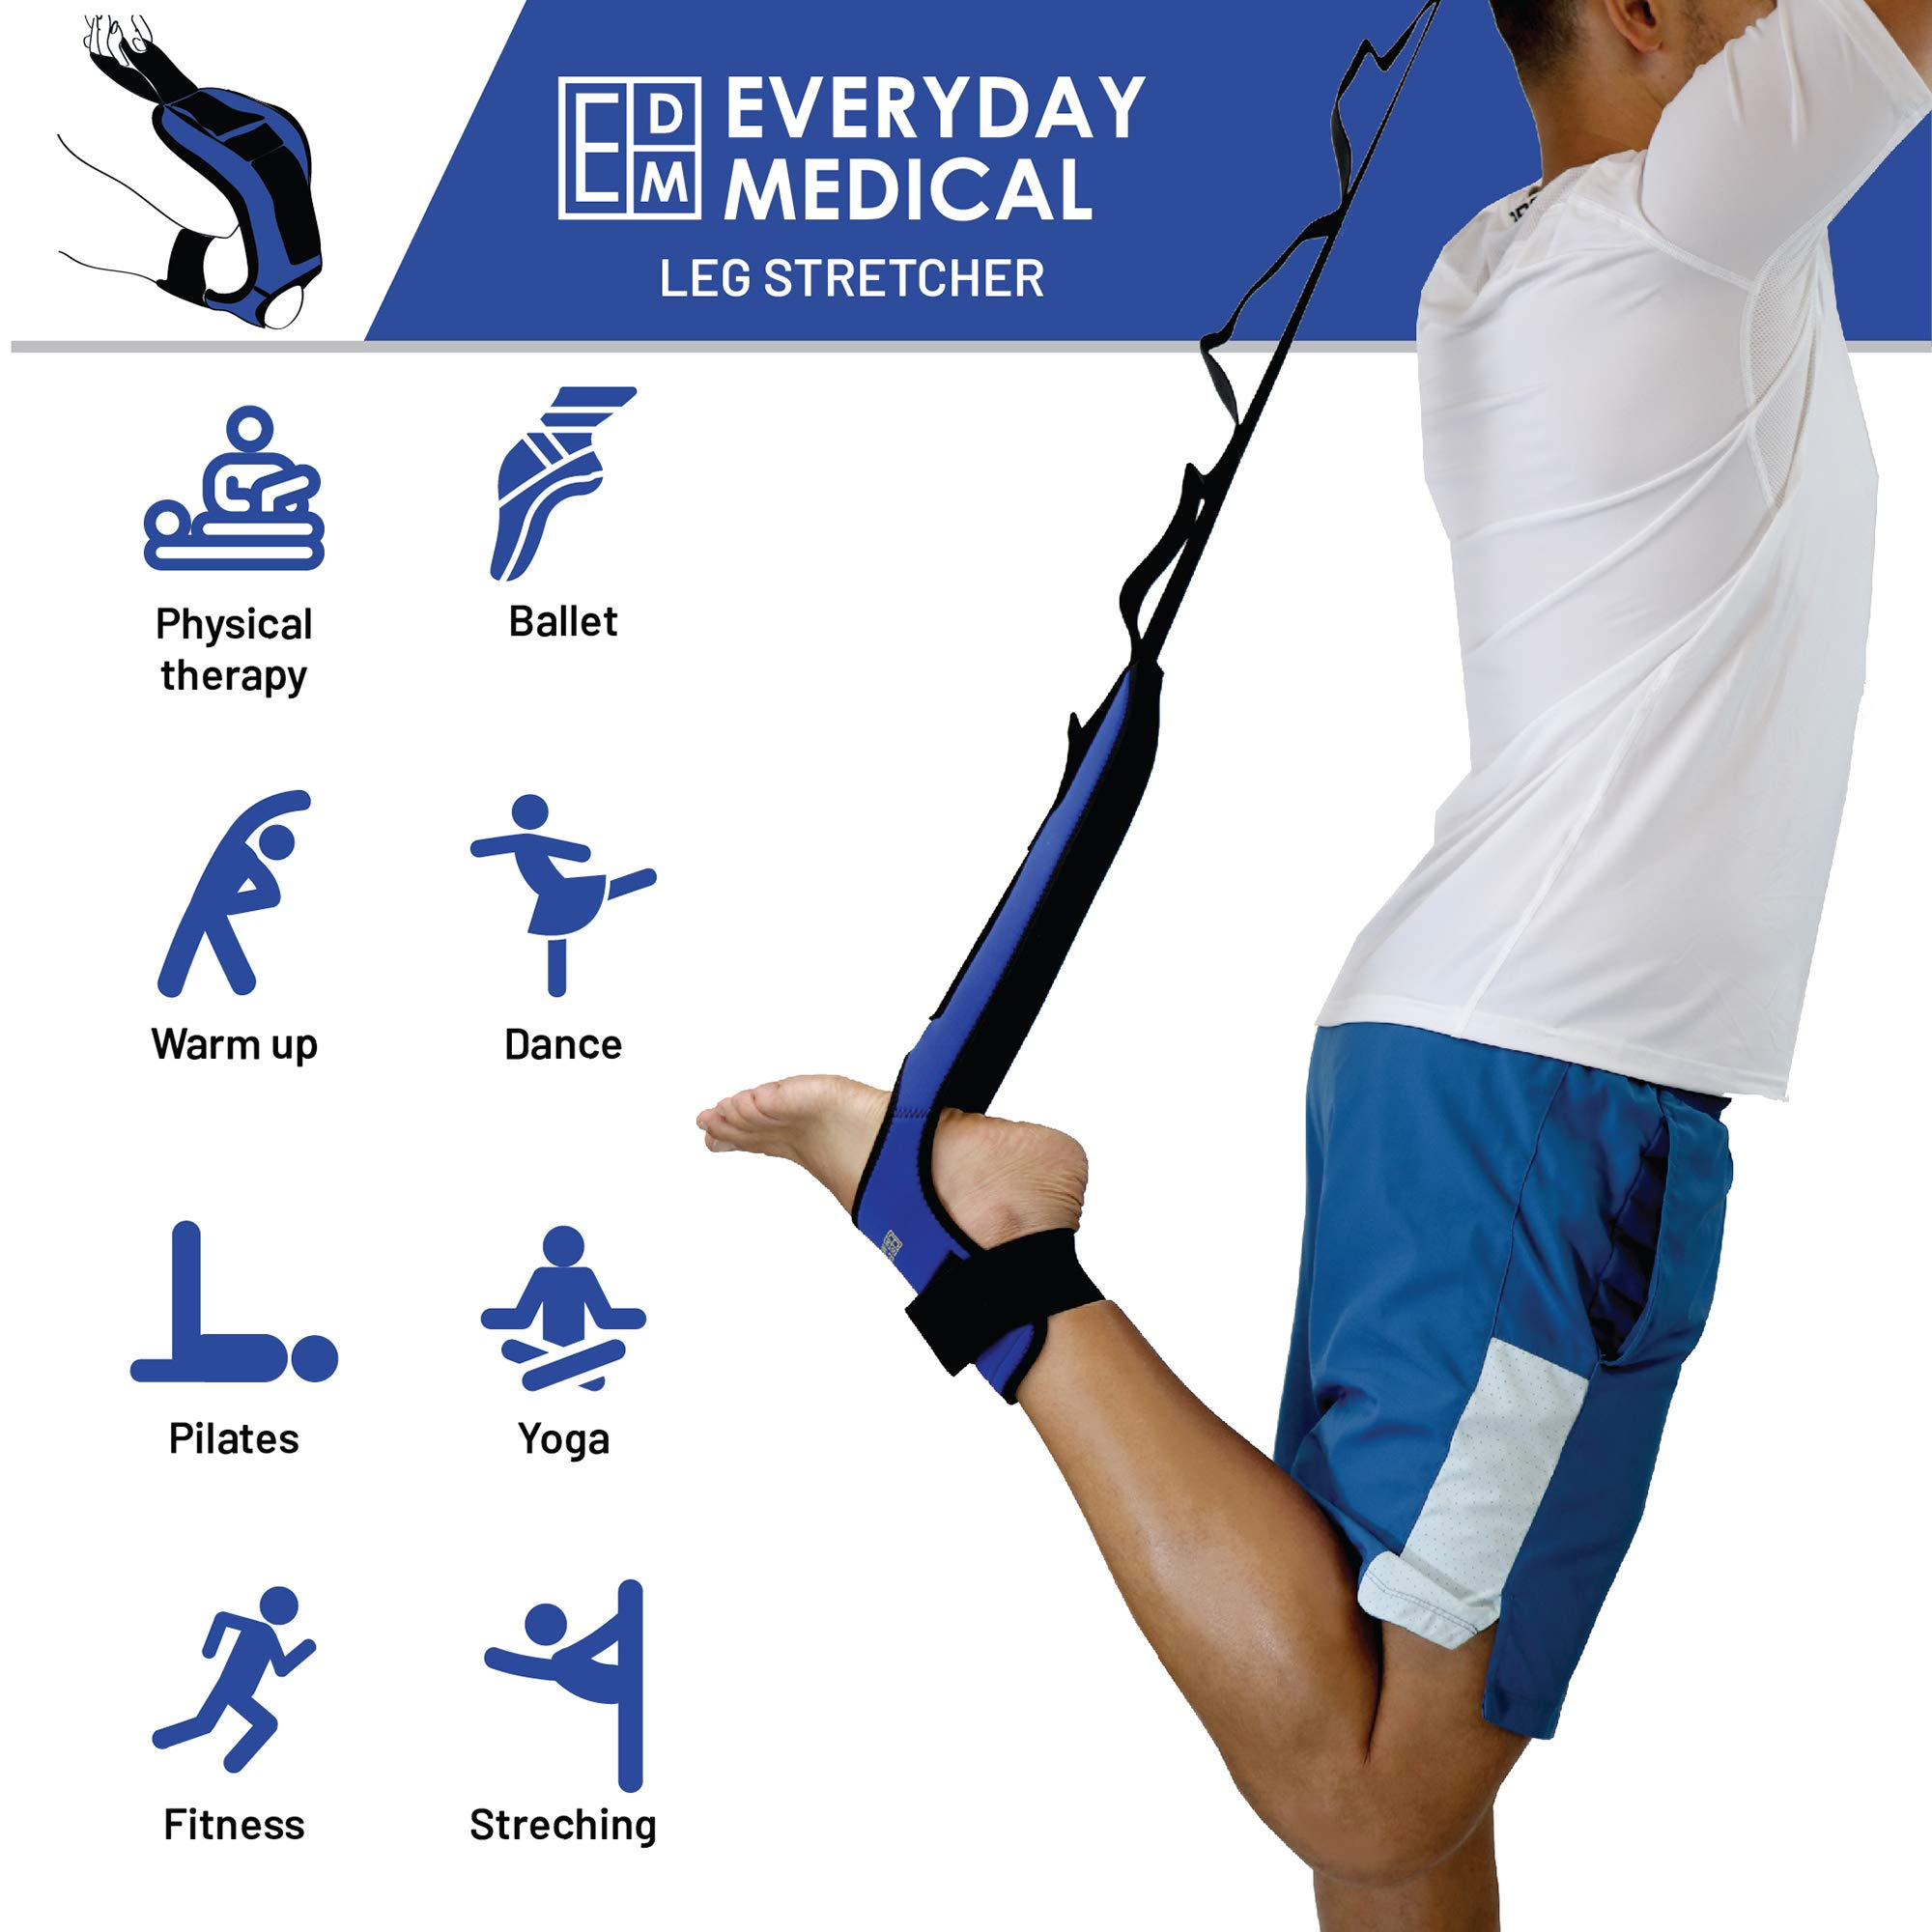 Plantar Fasciitis Foot Stretching Strap - Leg and Foot Stretcher - Stretch Your Heel, Calf and Arch - Improve Strength, Balance, Flexibility, Prevent Injuries - Great for Yoga by Everyday Medical